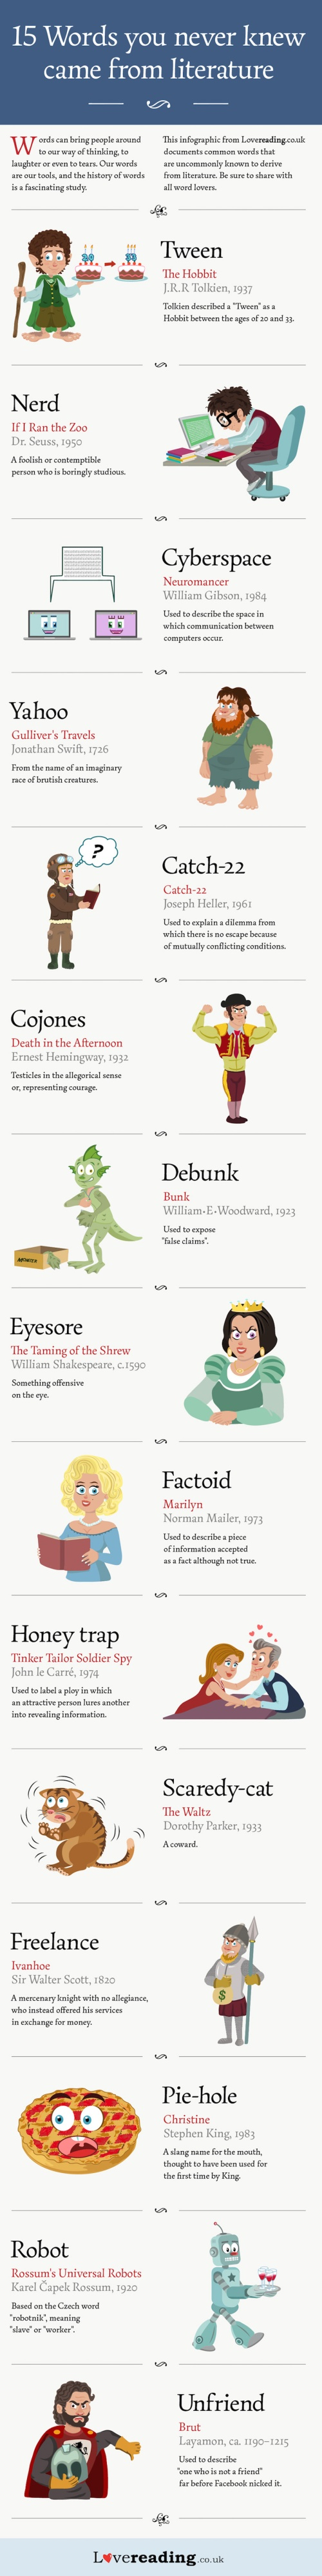 15-words-you-never-knew-came-from-literature-infographic